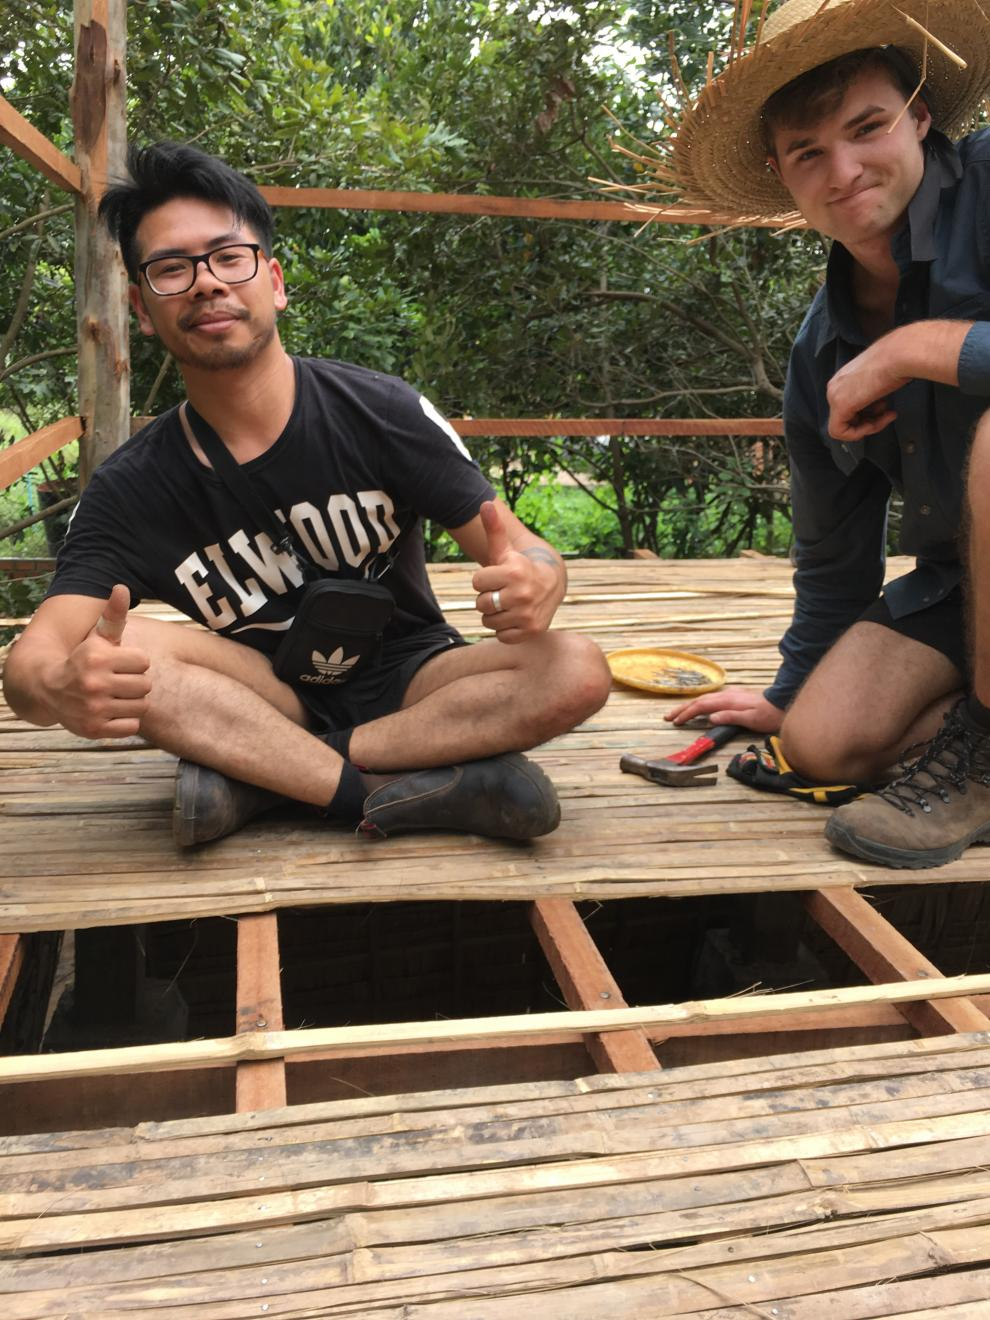 DAB Student project, Building houses for underprivileged families in Cambodia